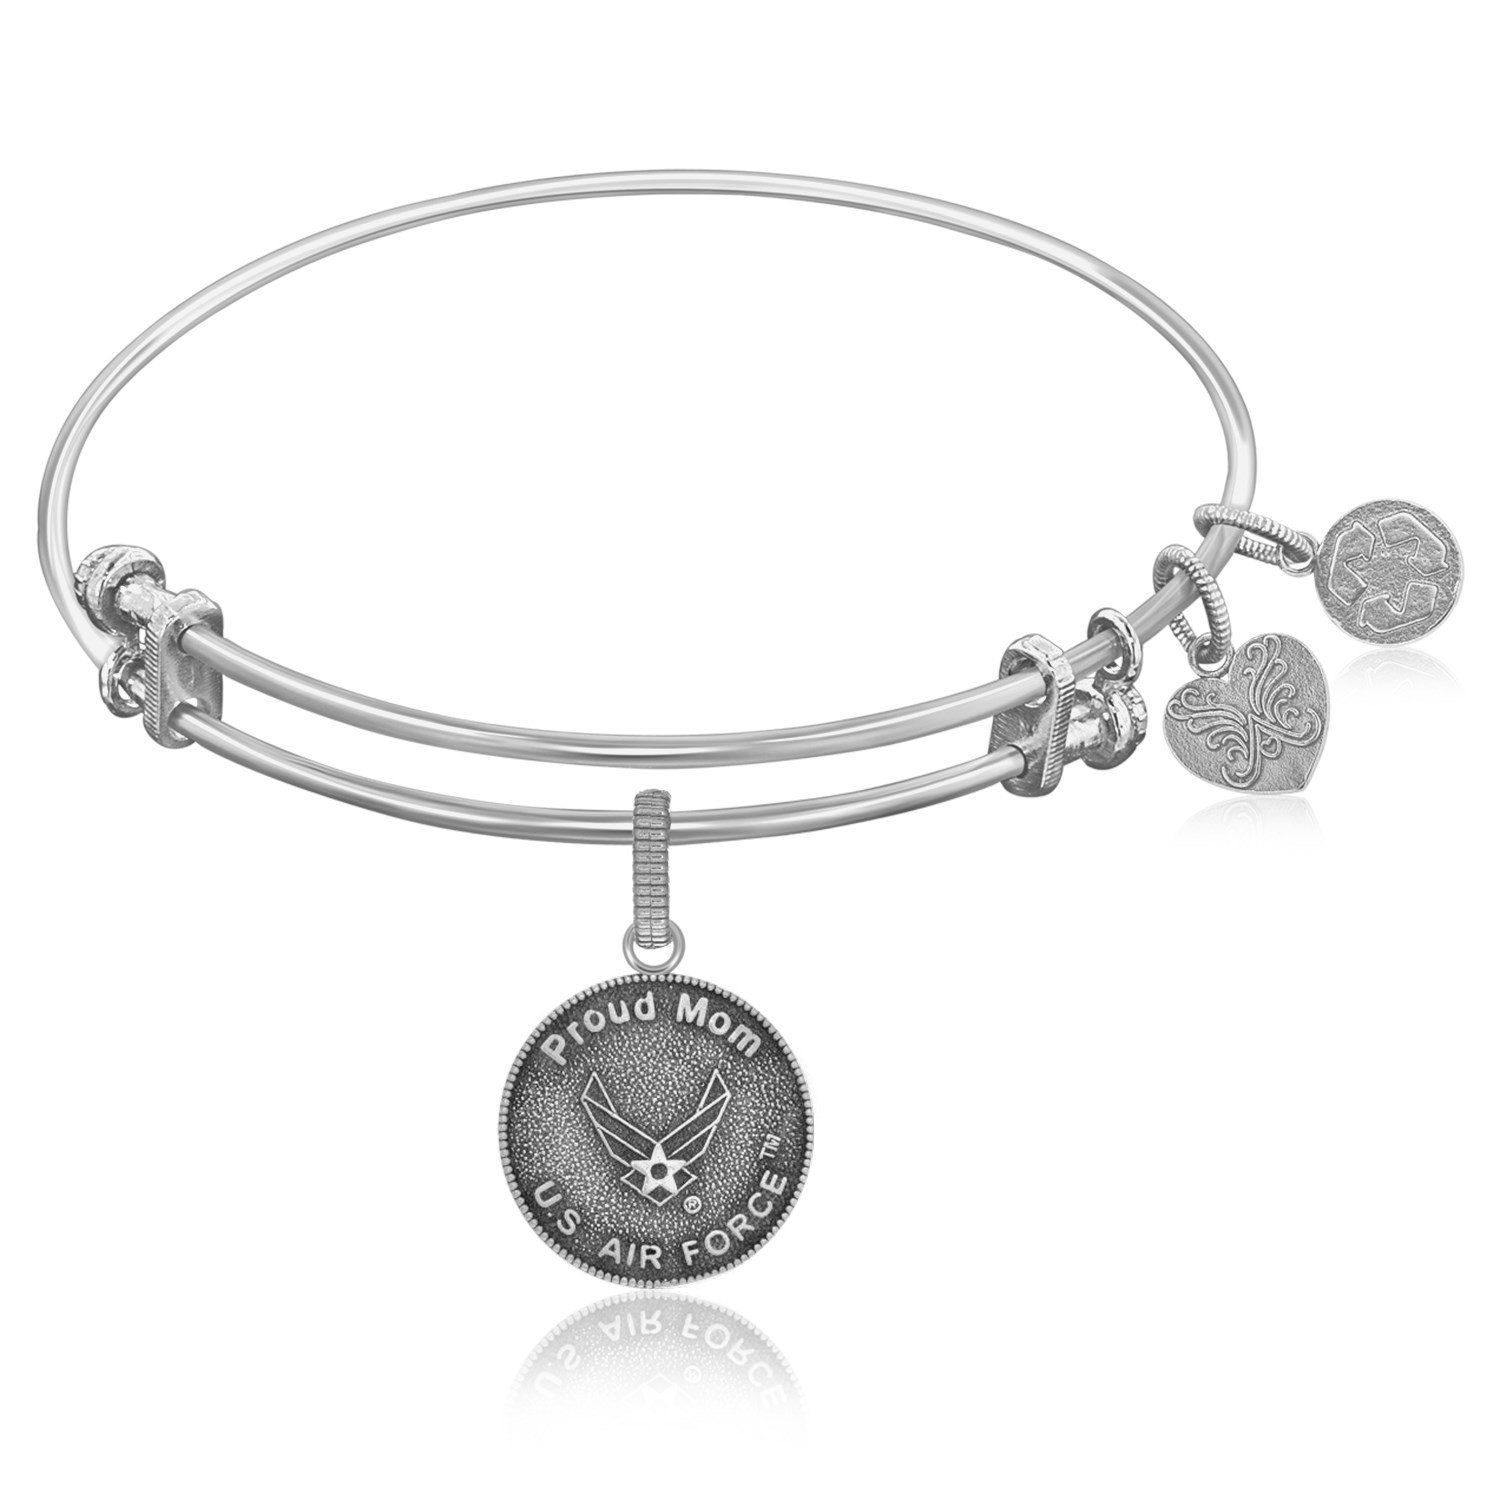 expandable bangle in white tone brass with u s air force proud mom